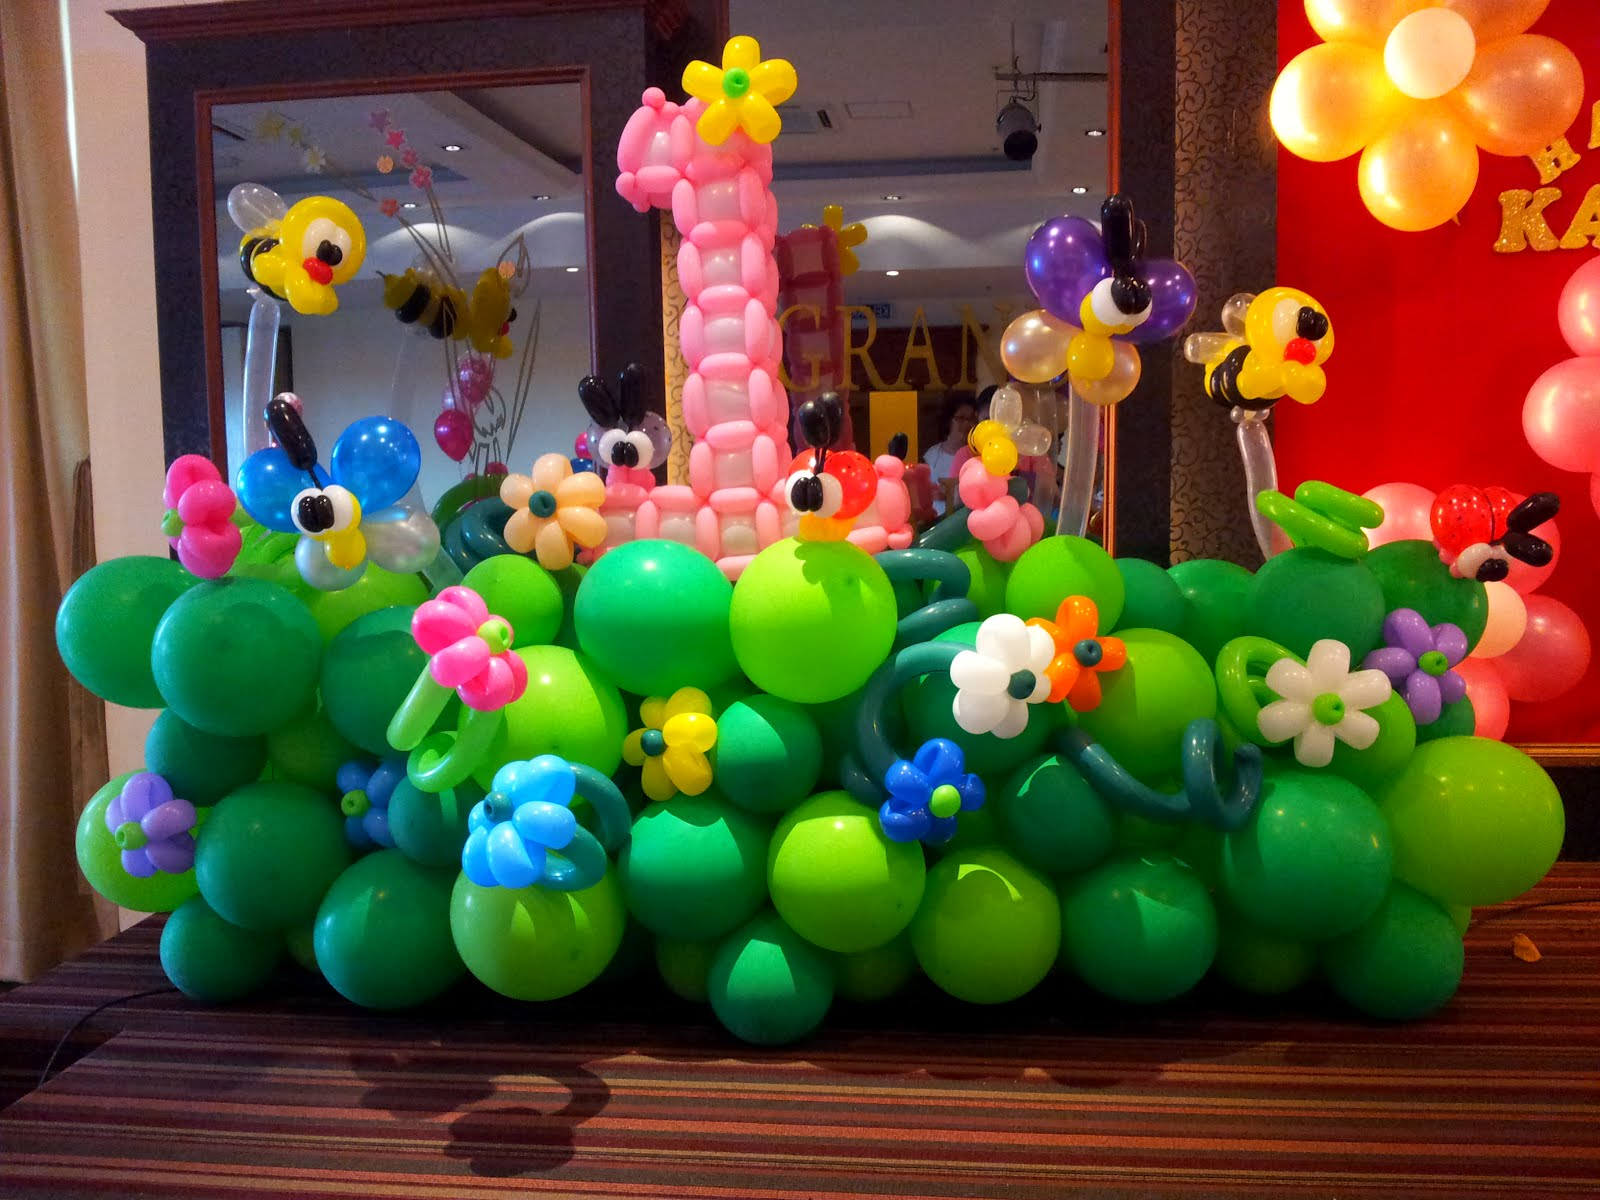 Balloon decoration for birthday party party favors ideas for B day decoration photos